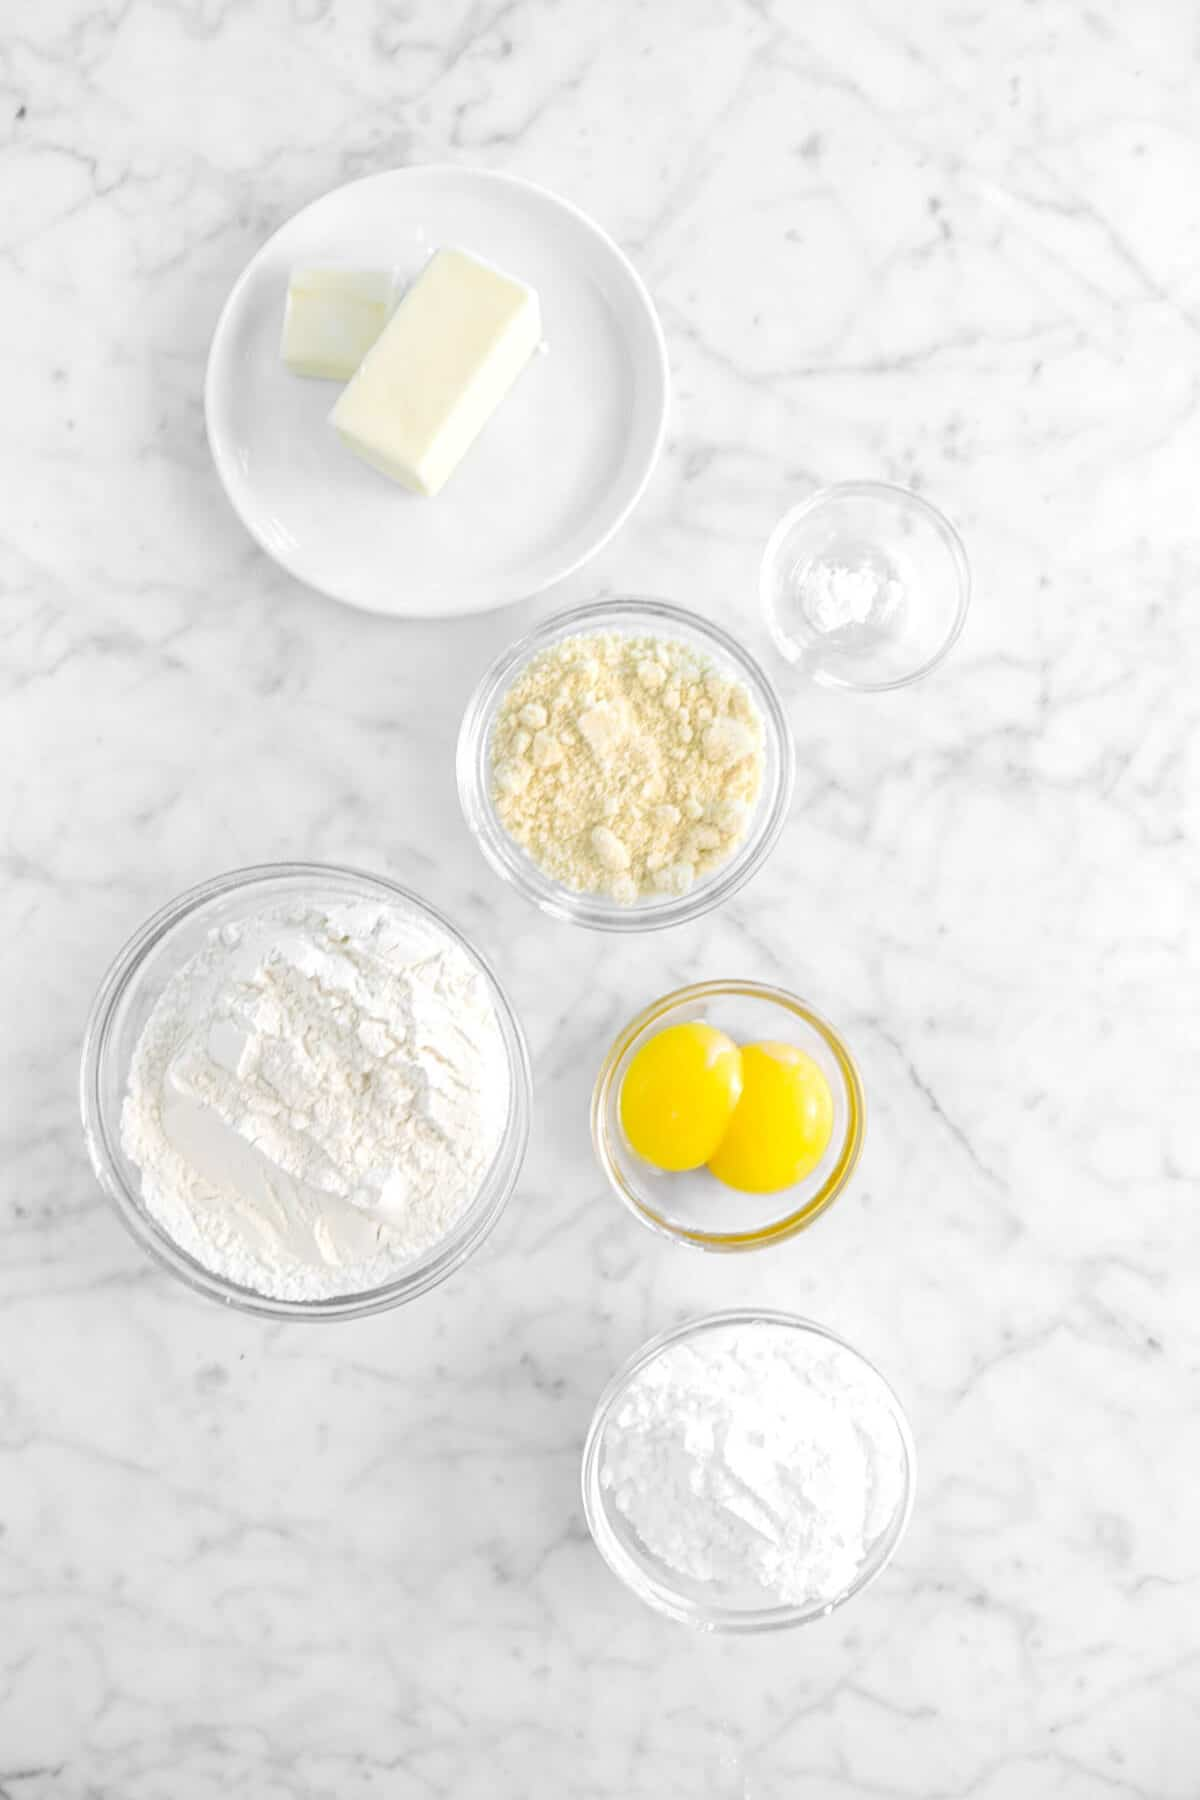 butter, almond flour, baking soda, eggs, flour, and powdered sugar on marble counter